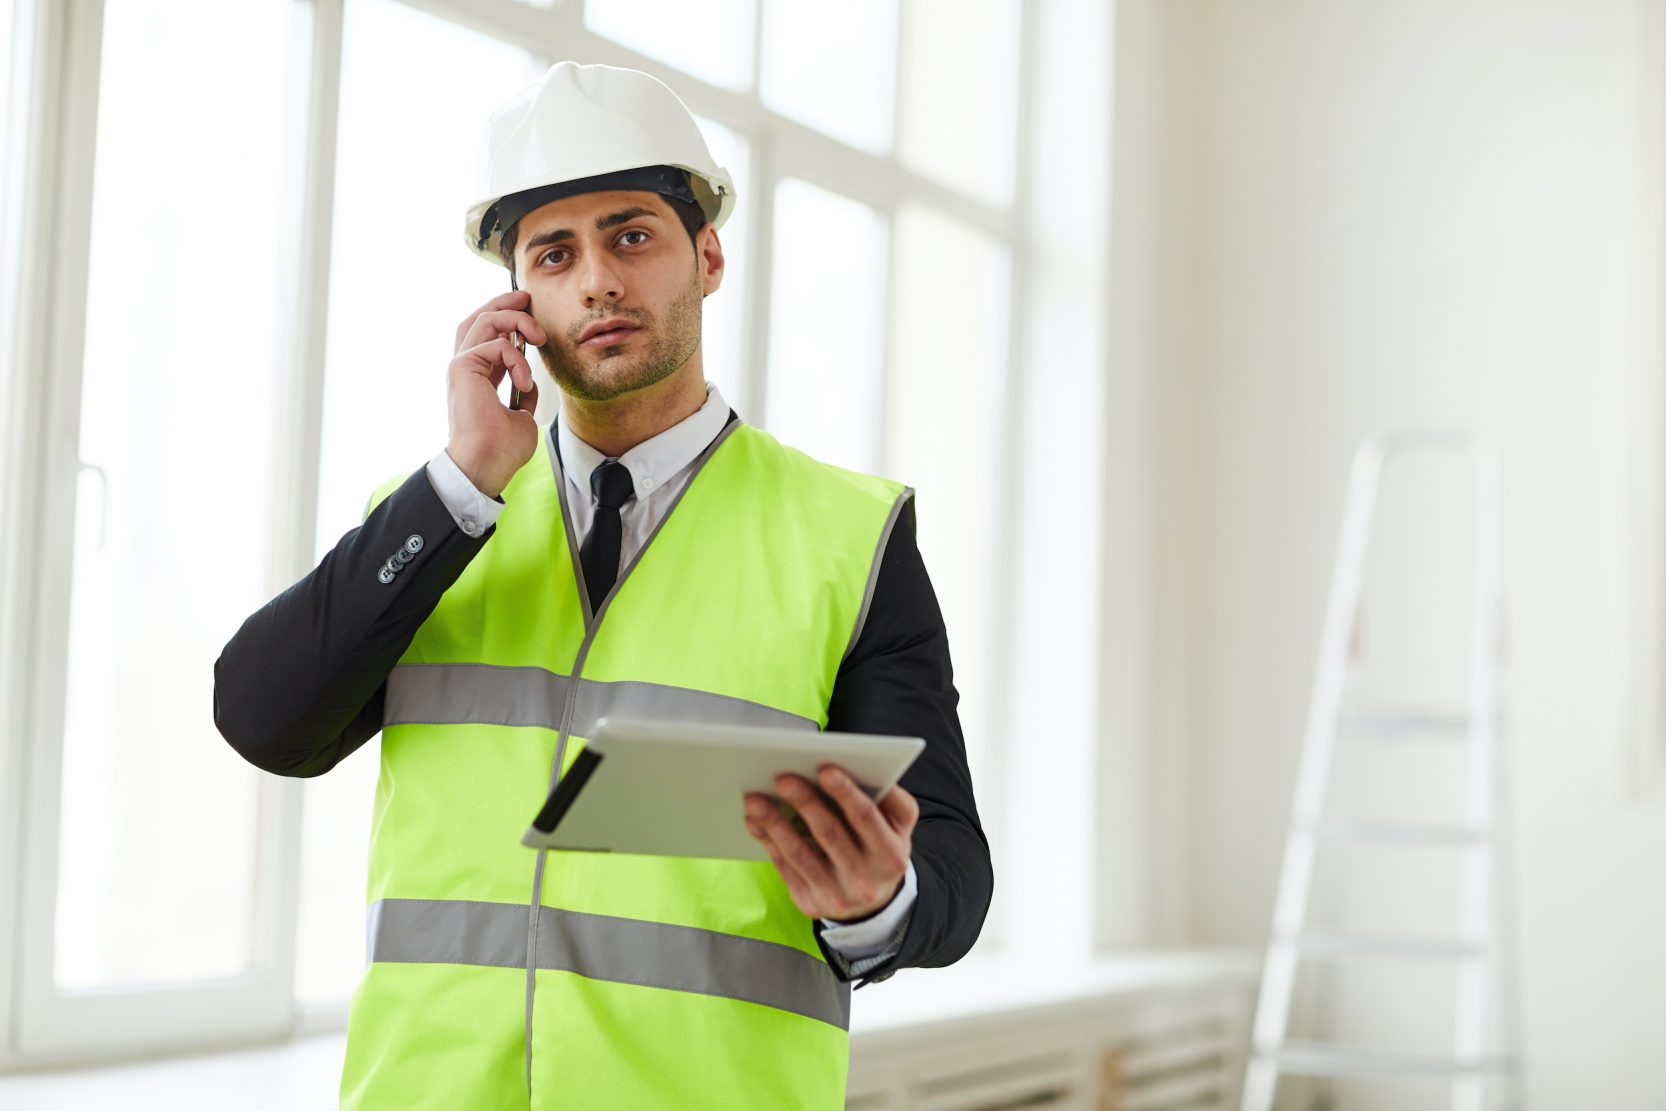 Qatar issues Occupational Safety and Health Policy to protect workers' health